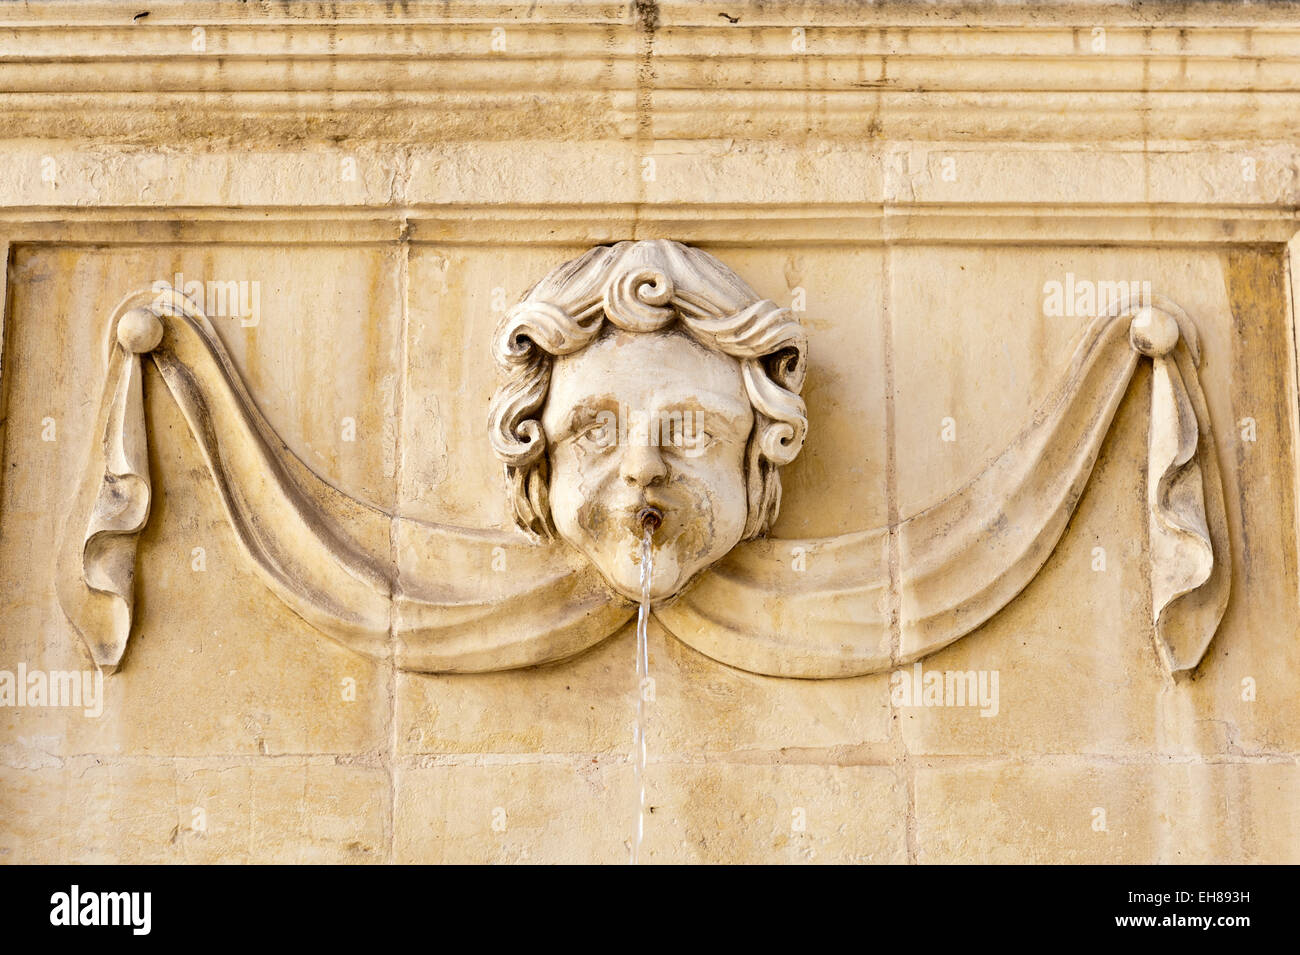 Baroque-style face on a fountain at St. John's Co-Cathedral, church of the Order of the Knights Hospitaller - Stock Image